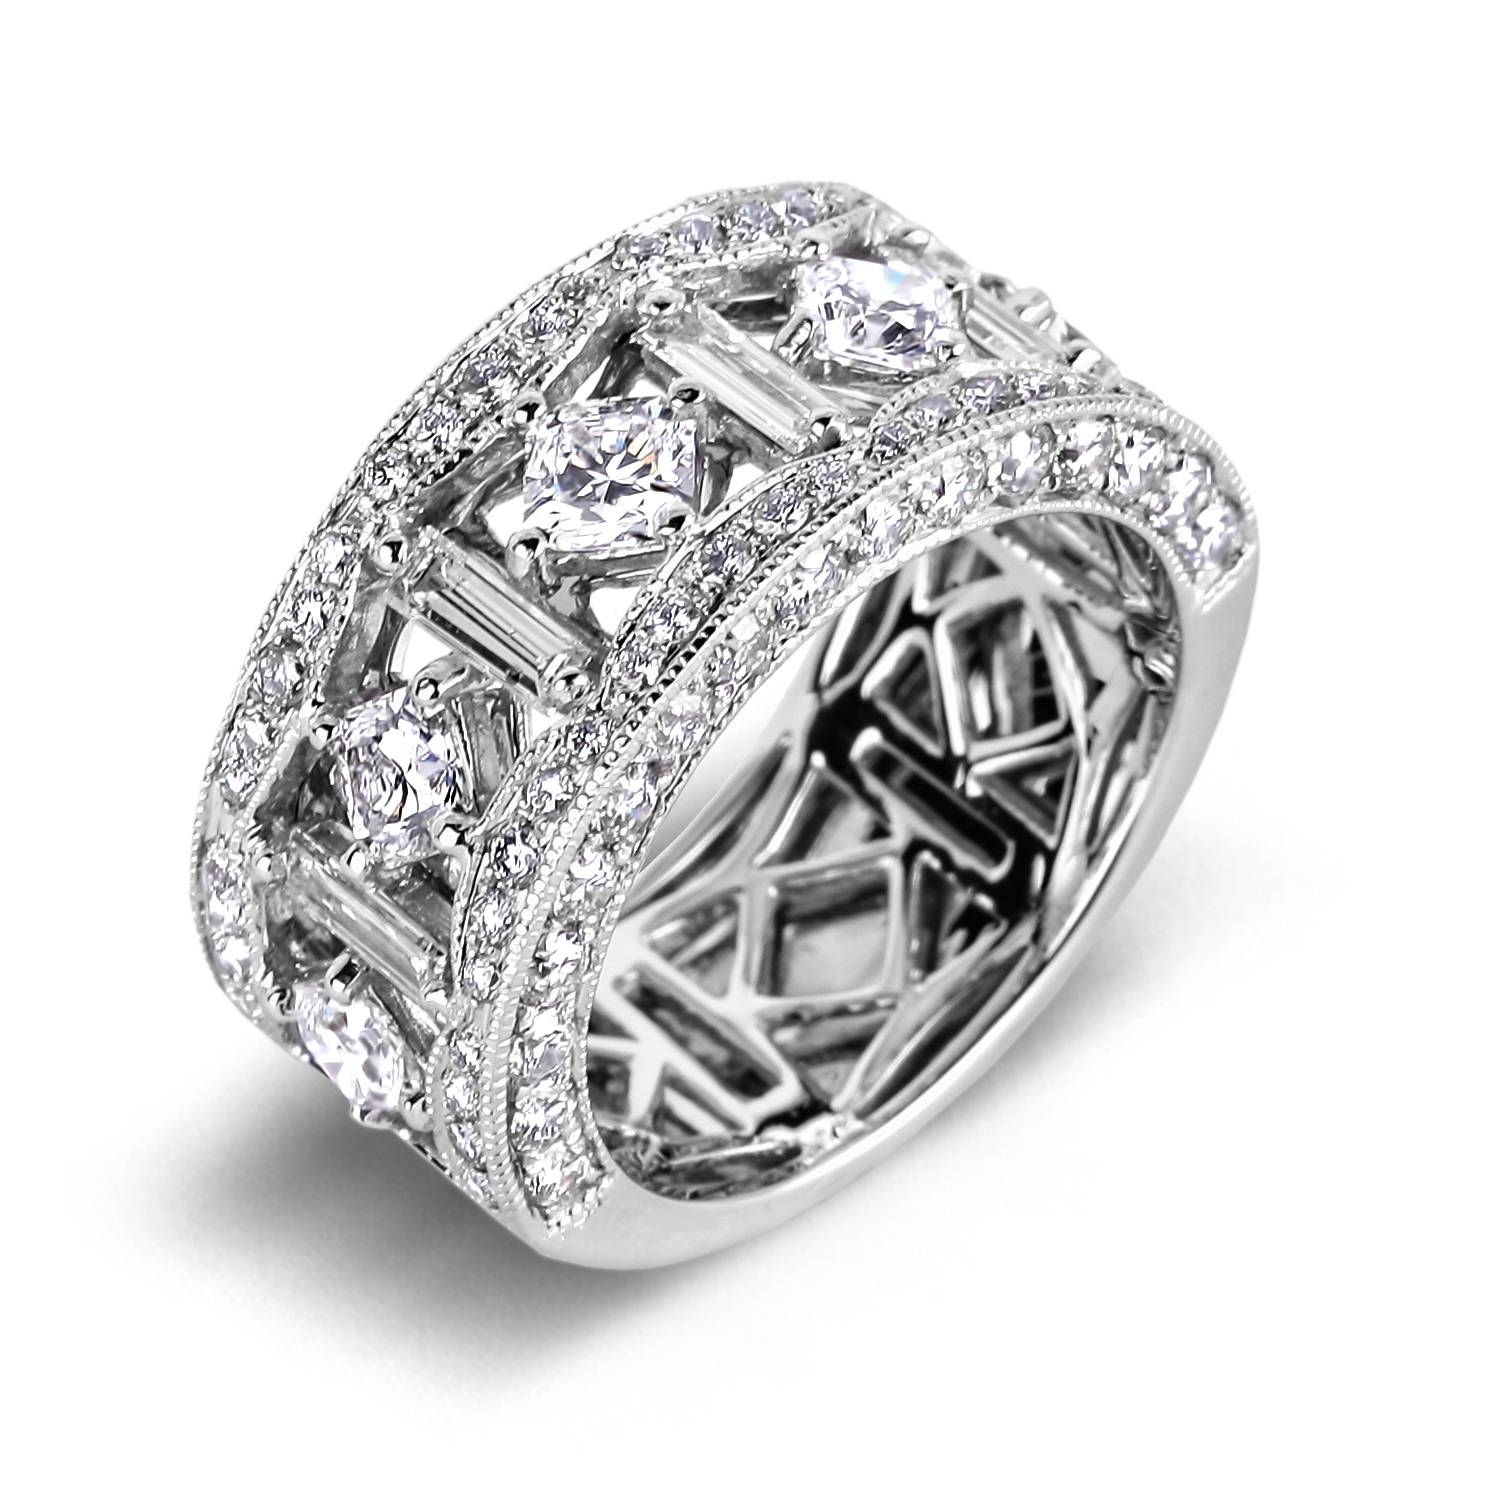 Wedding Anniversary Rings Diamonds | Wedding Ideas Throughout 2018 Wide Band Anniversary Rings (View 20 of 25)